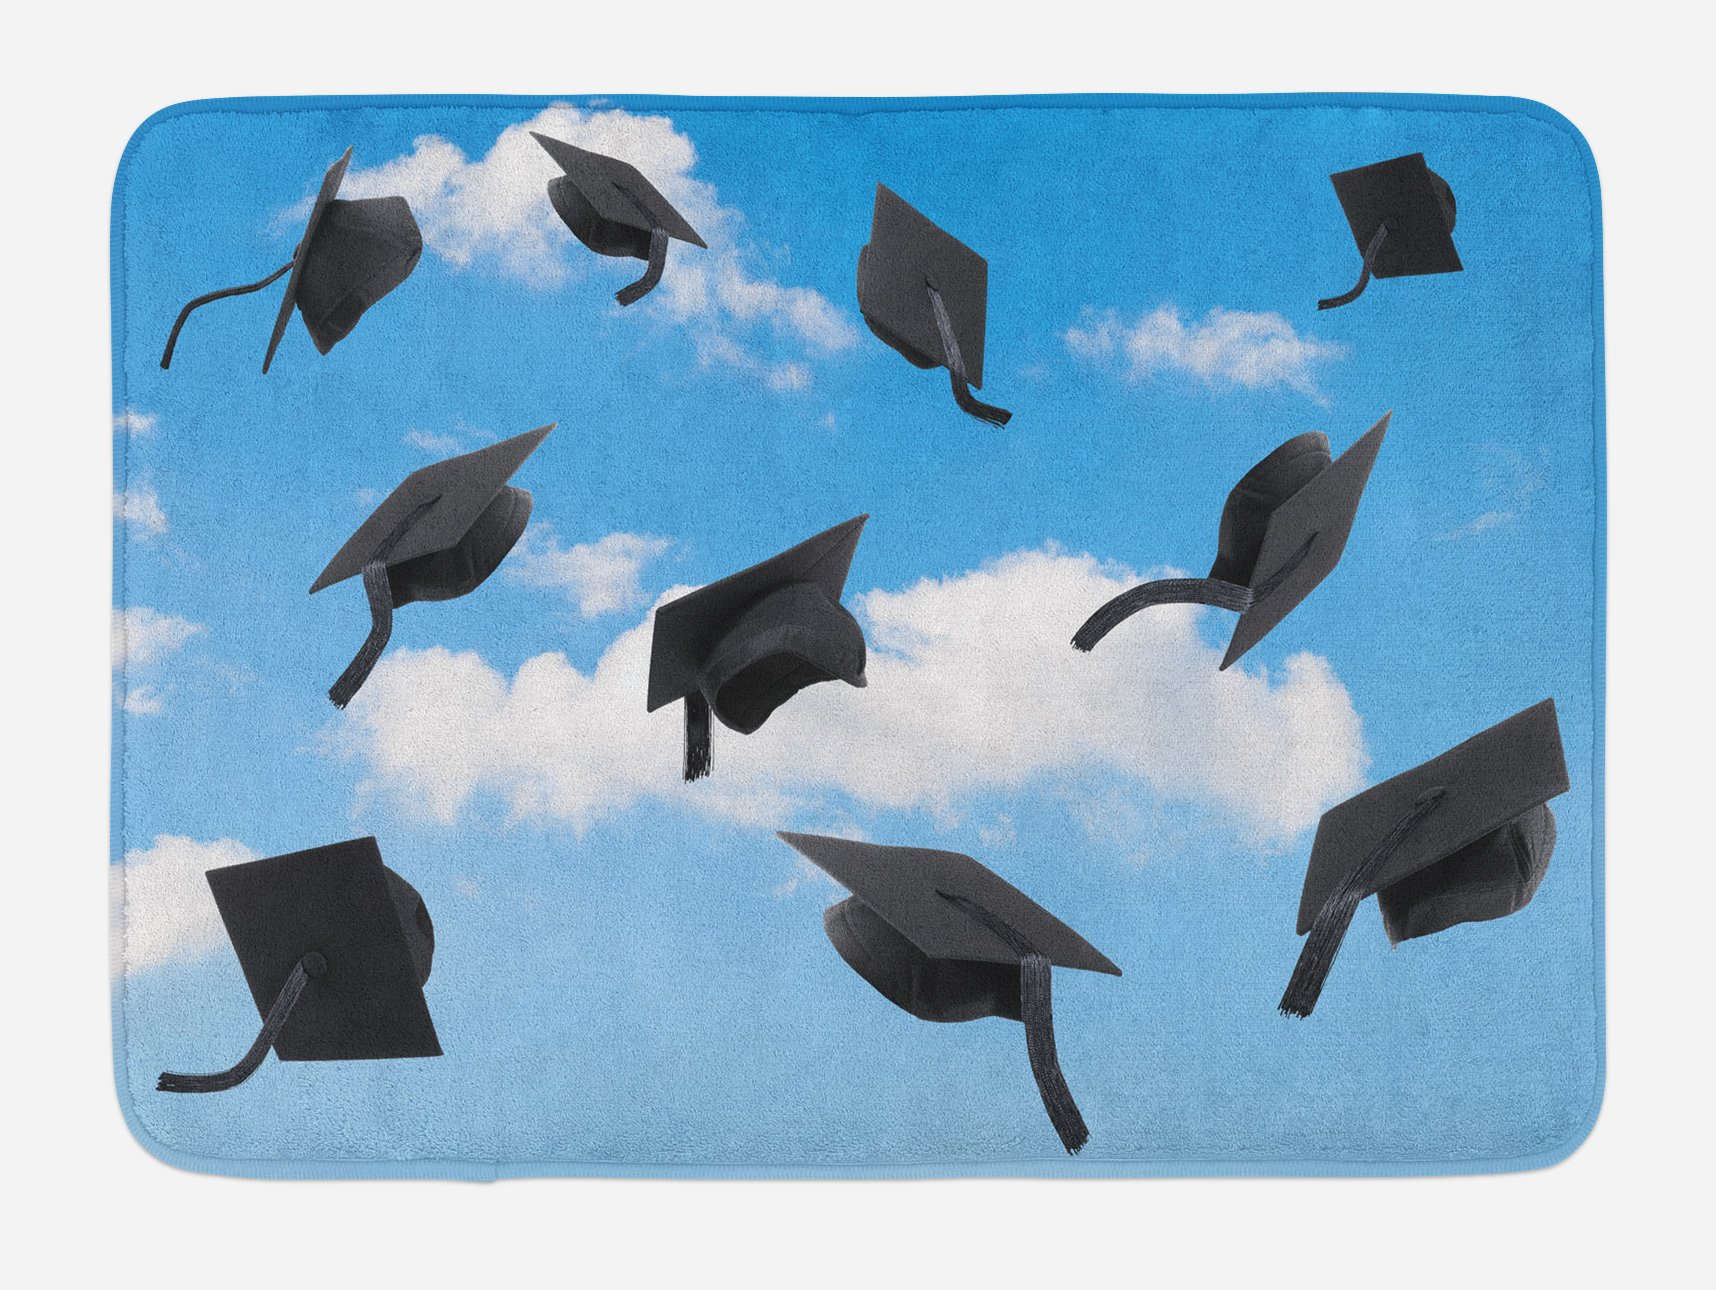 Lunarable Graduation Bath Mat, Caps Thrown into Sky Last of the School Highschool College Ceremony Picture, Plush Bathroom Decor Mat with Non Slip Backing, 29.5 W X 17.5 W Inches, Blue Black